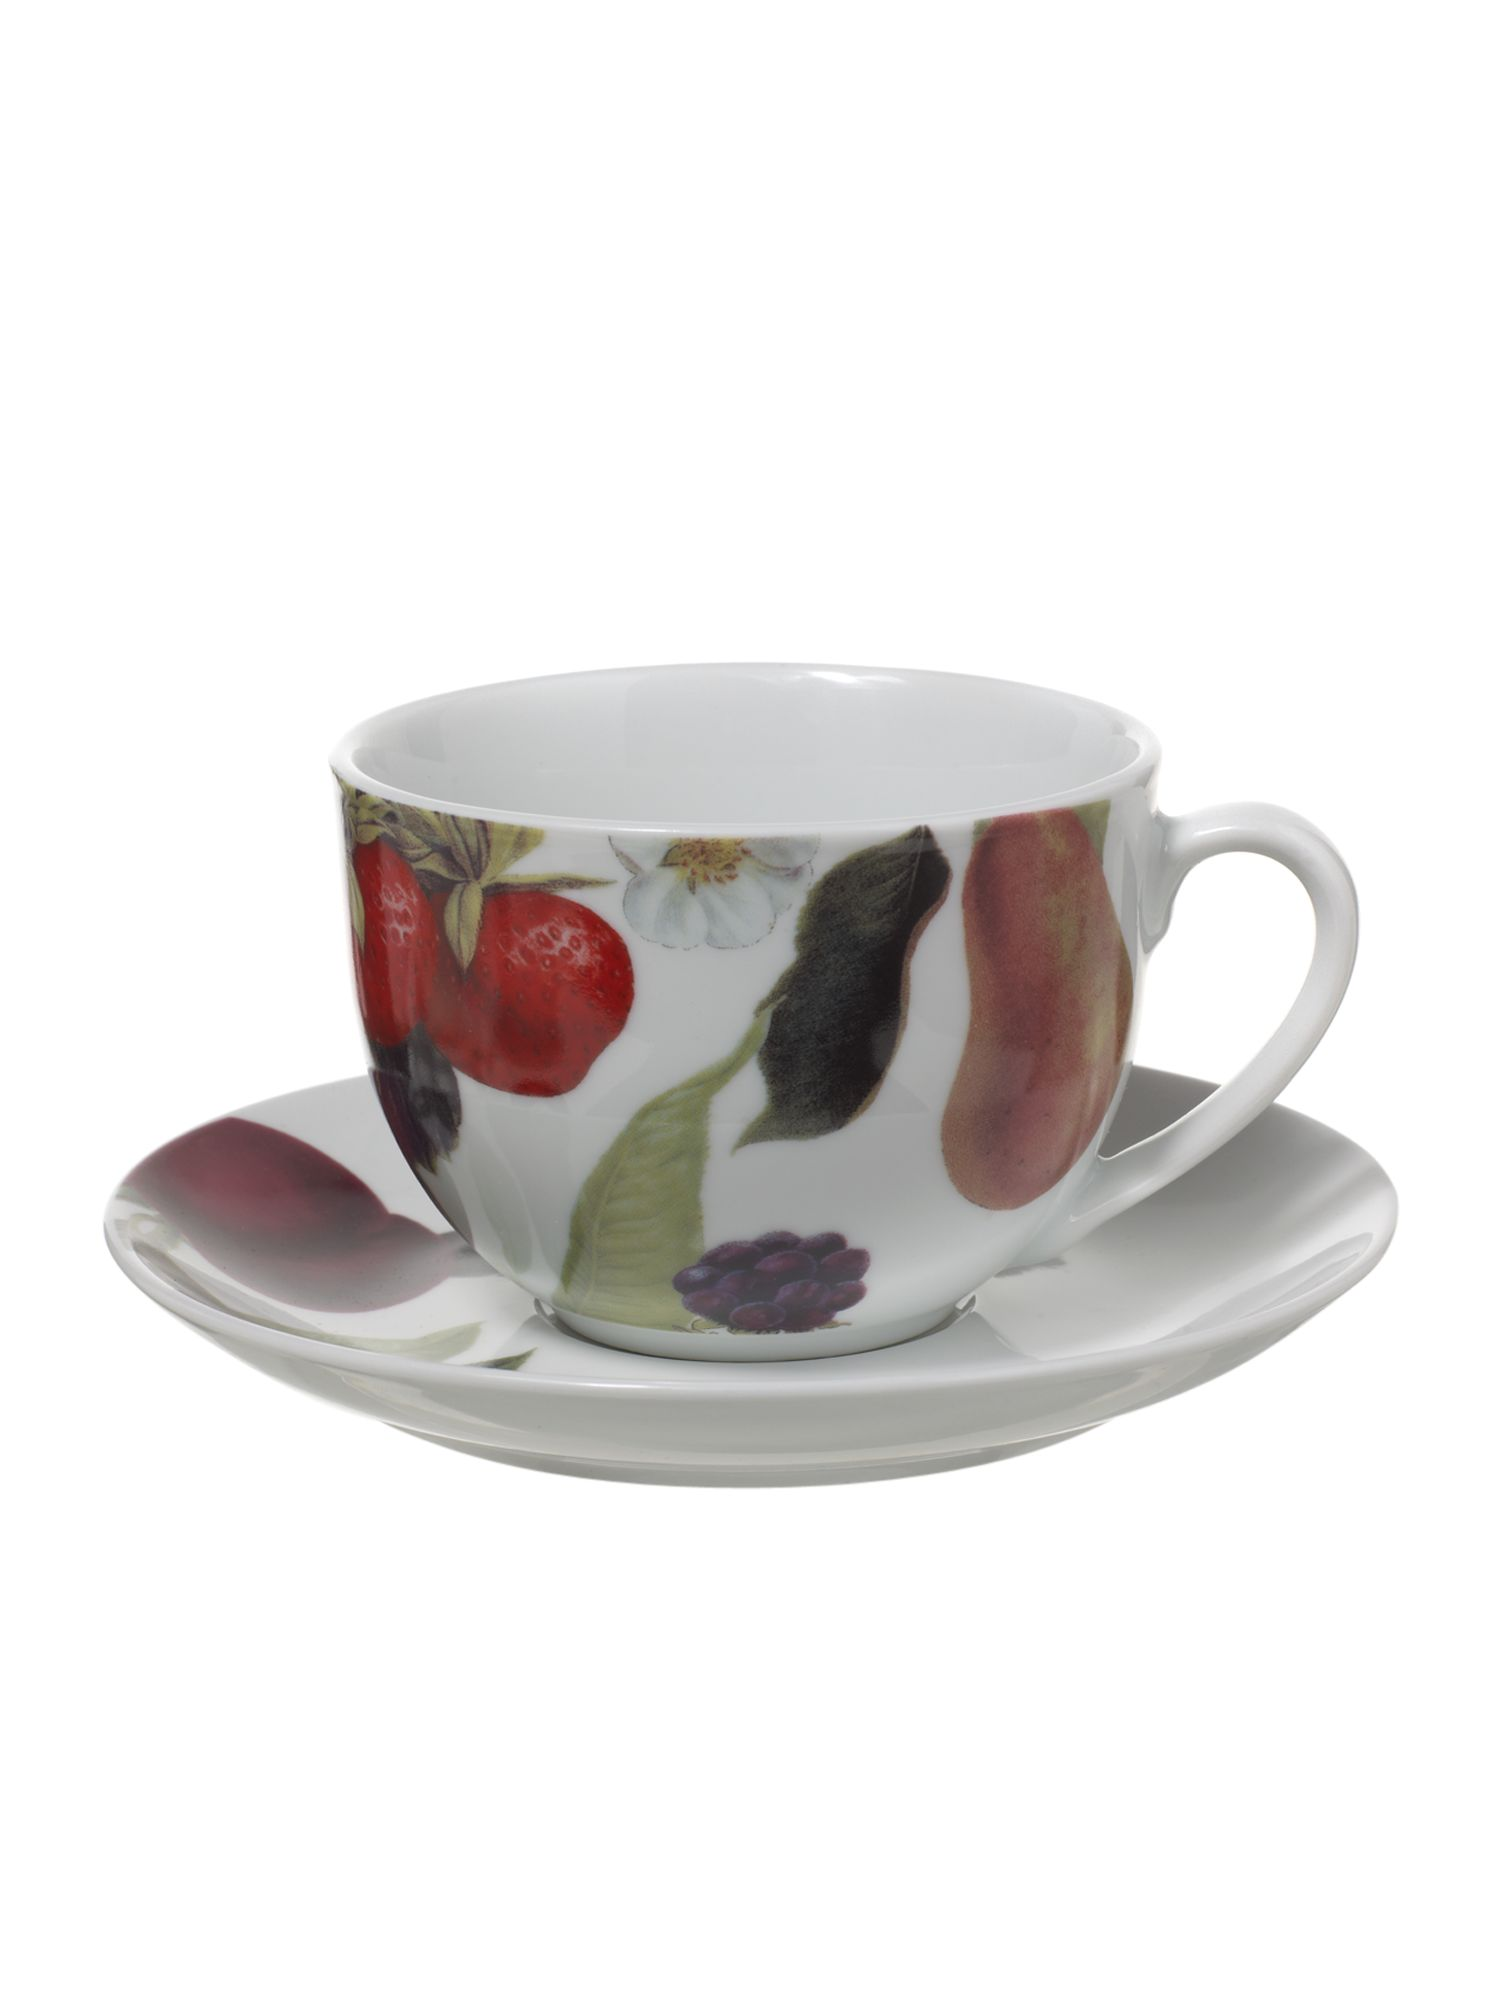 Botanical fruits teacup and saucer